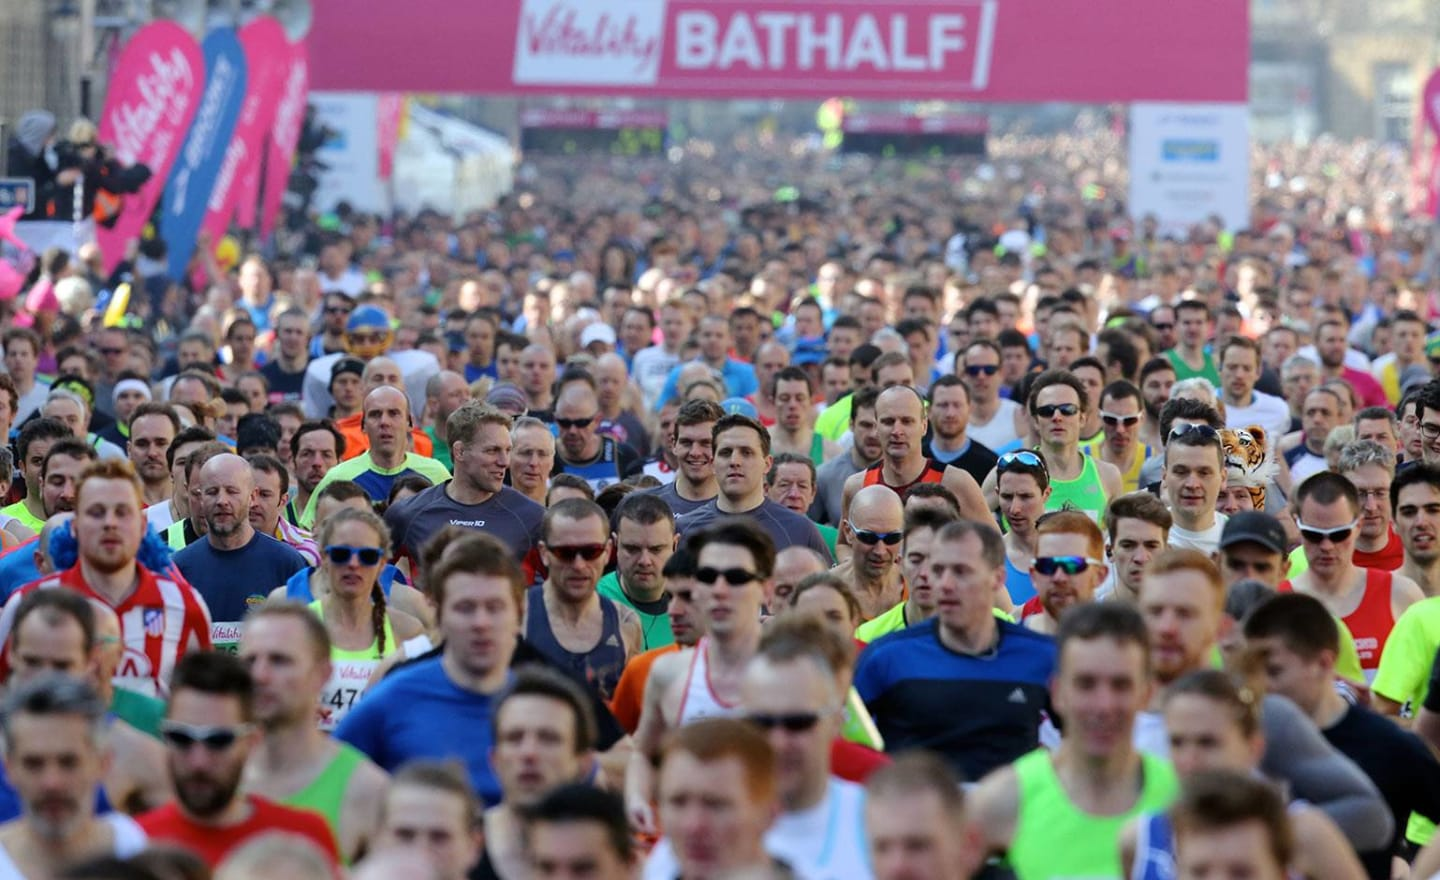 Bath Half in 5 weeks!